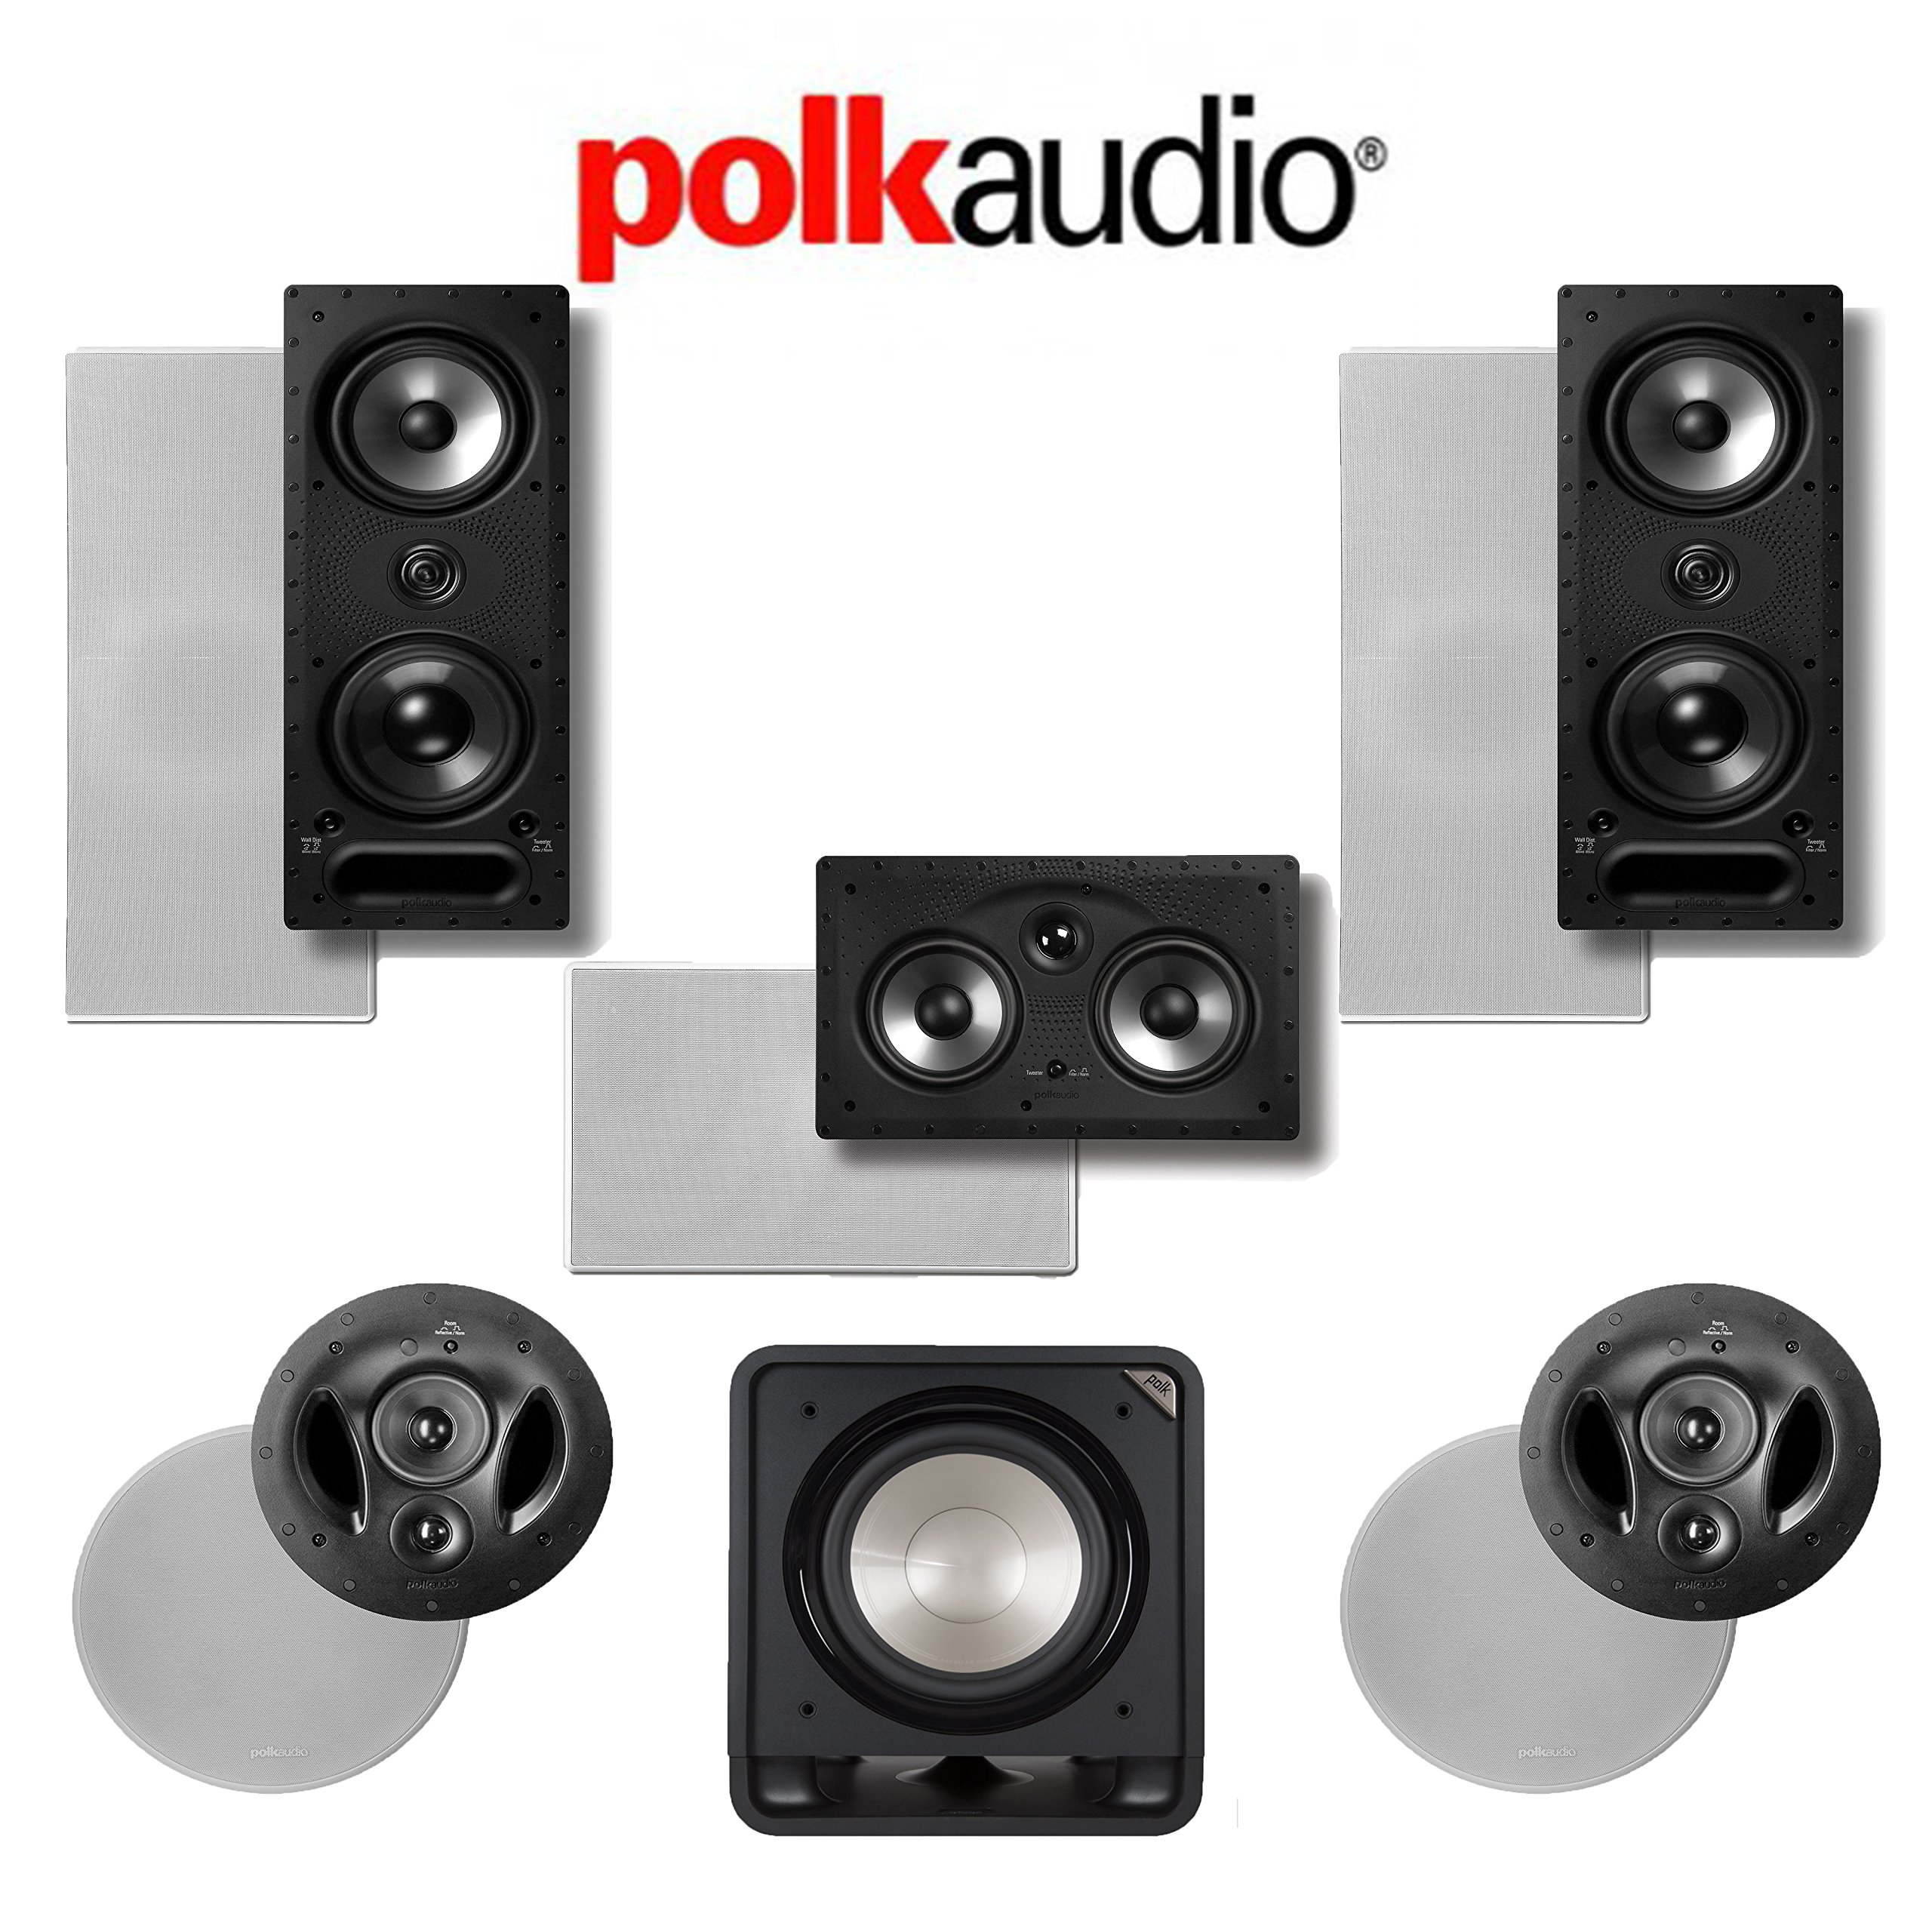 Polk Audio 90-RT Vanishing RT Series 5.1 High Performance In-Wall / In-Ceiling Home Theater Speaker System (90-RT + 265-LS + 255C-RT + HTS12) by Polk Audio